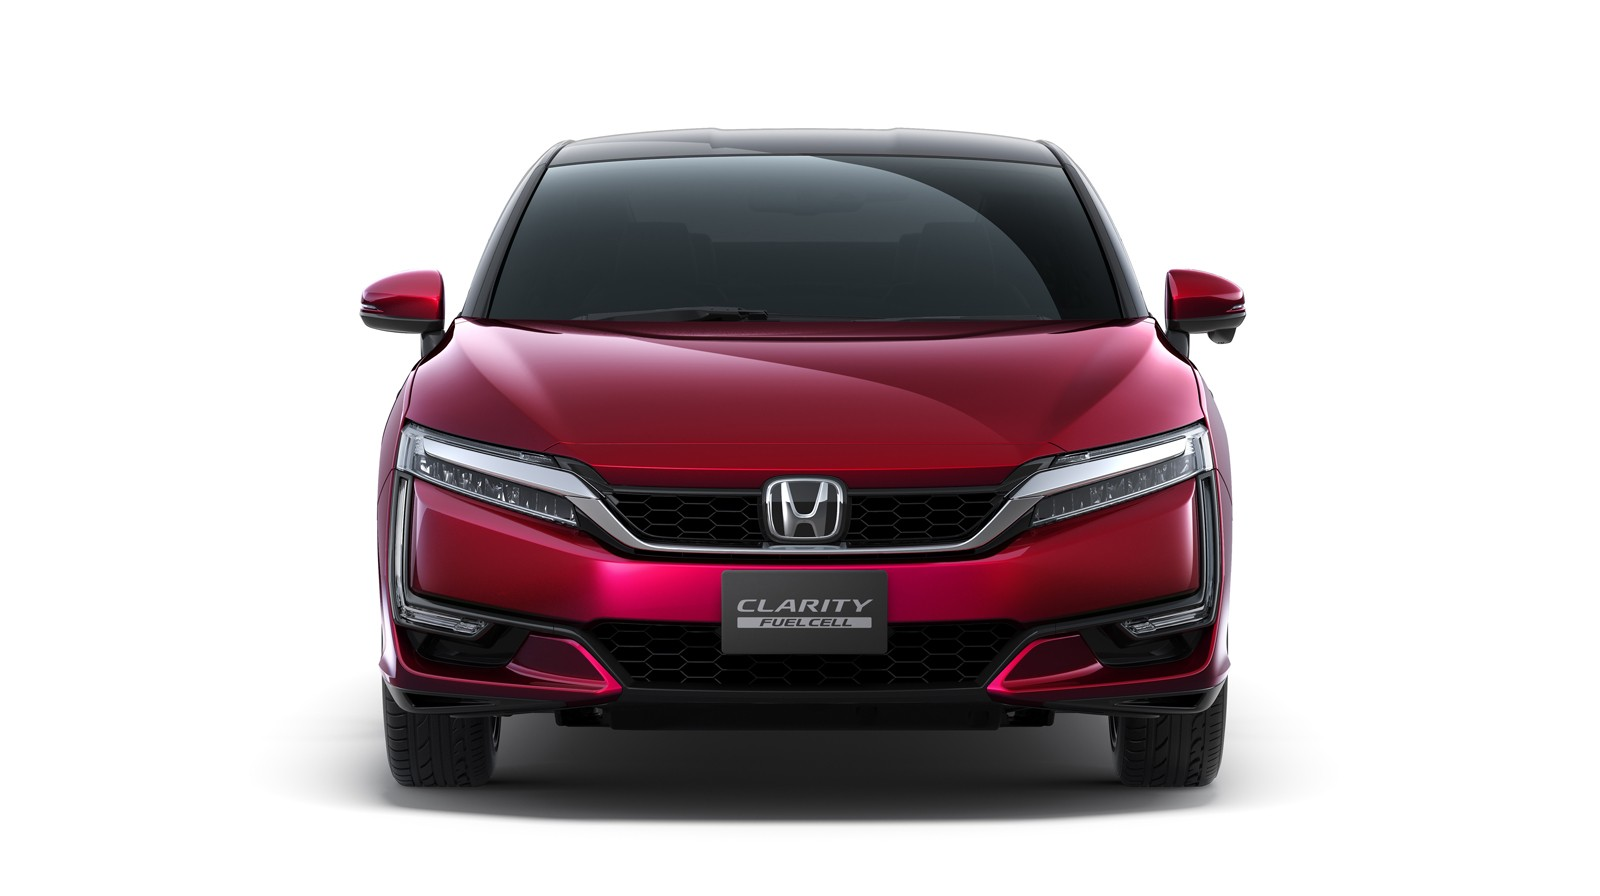 2017 honda clarity fuel cell boasts the longest range in the biz 366 miles autoevolution. Black Bedroom Furniture Sets. Home Design Ideas